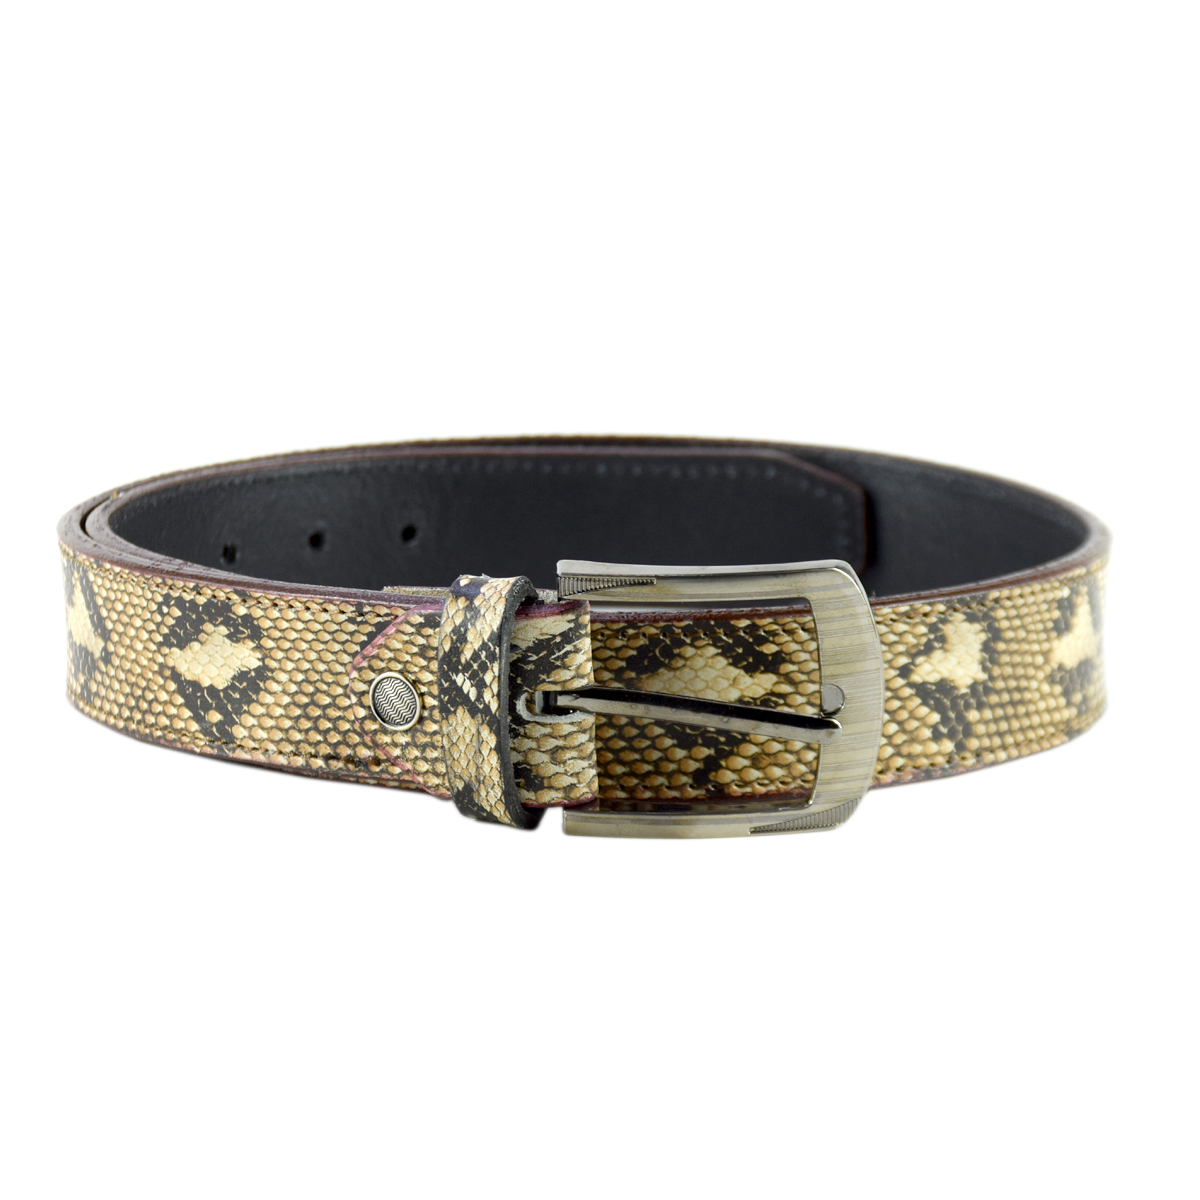 Snake Skin Printed Casual Leather Belt 1.5""